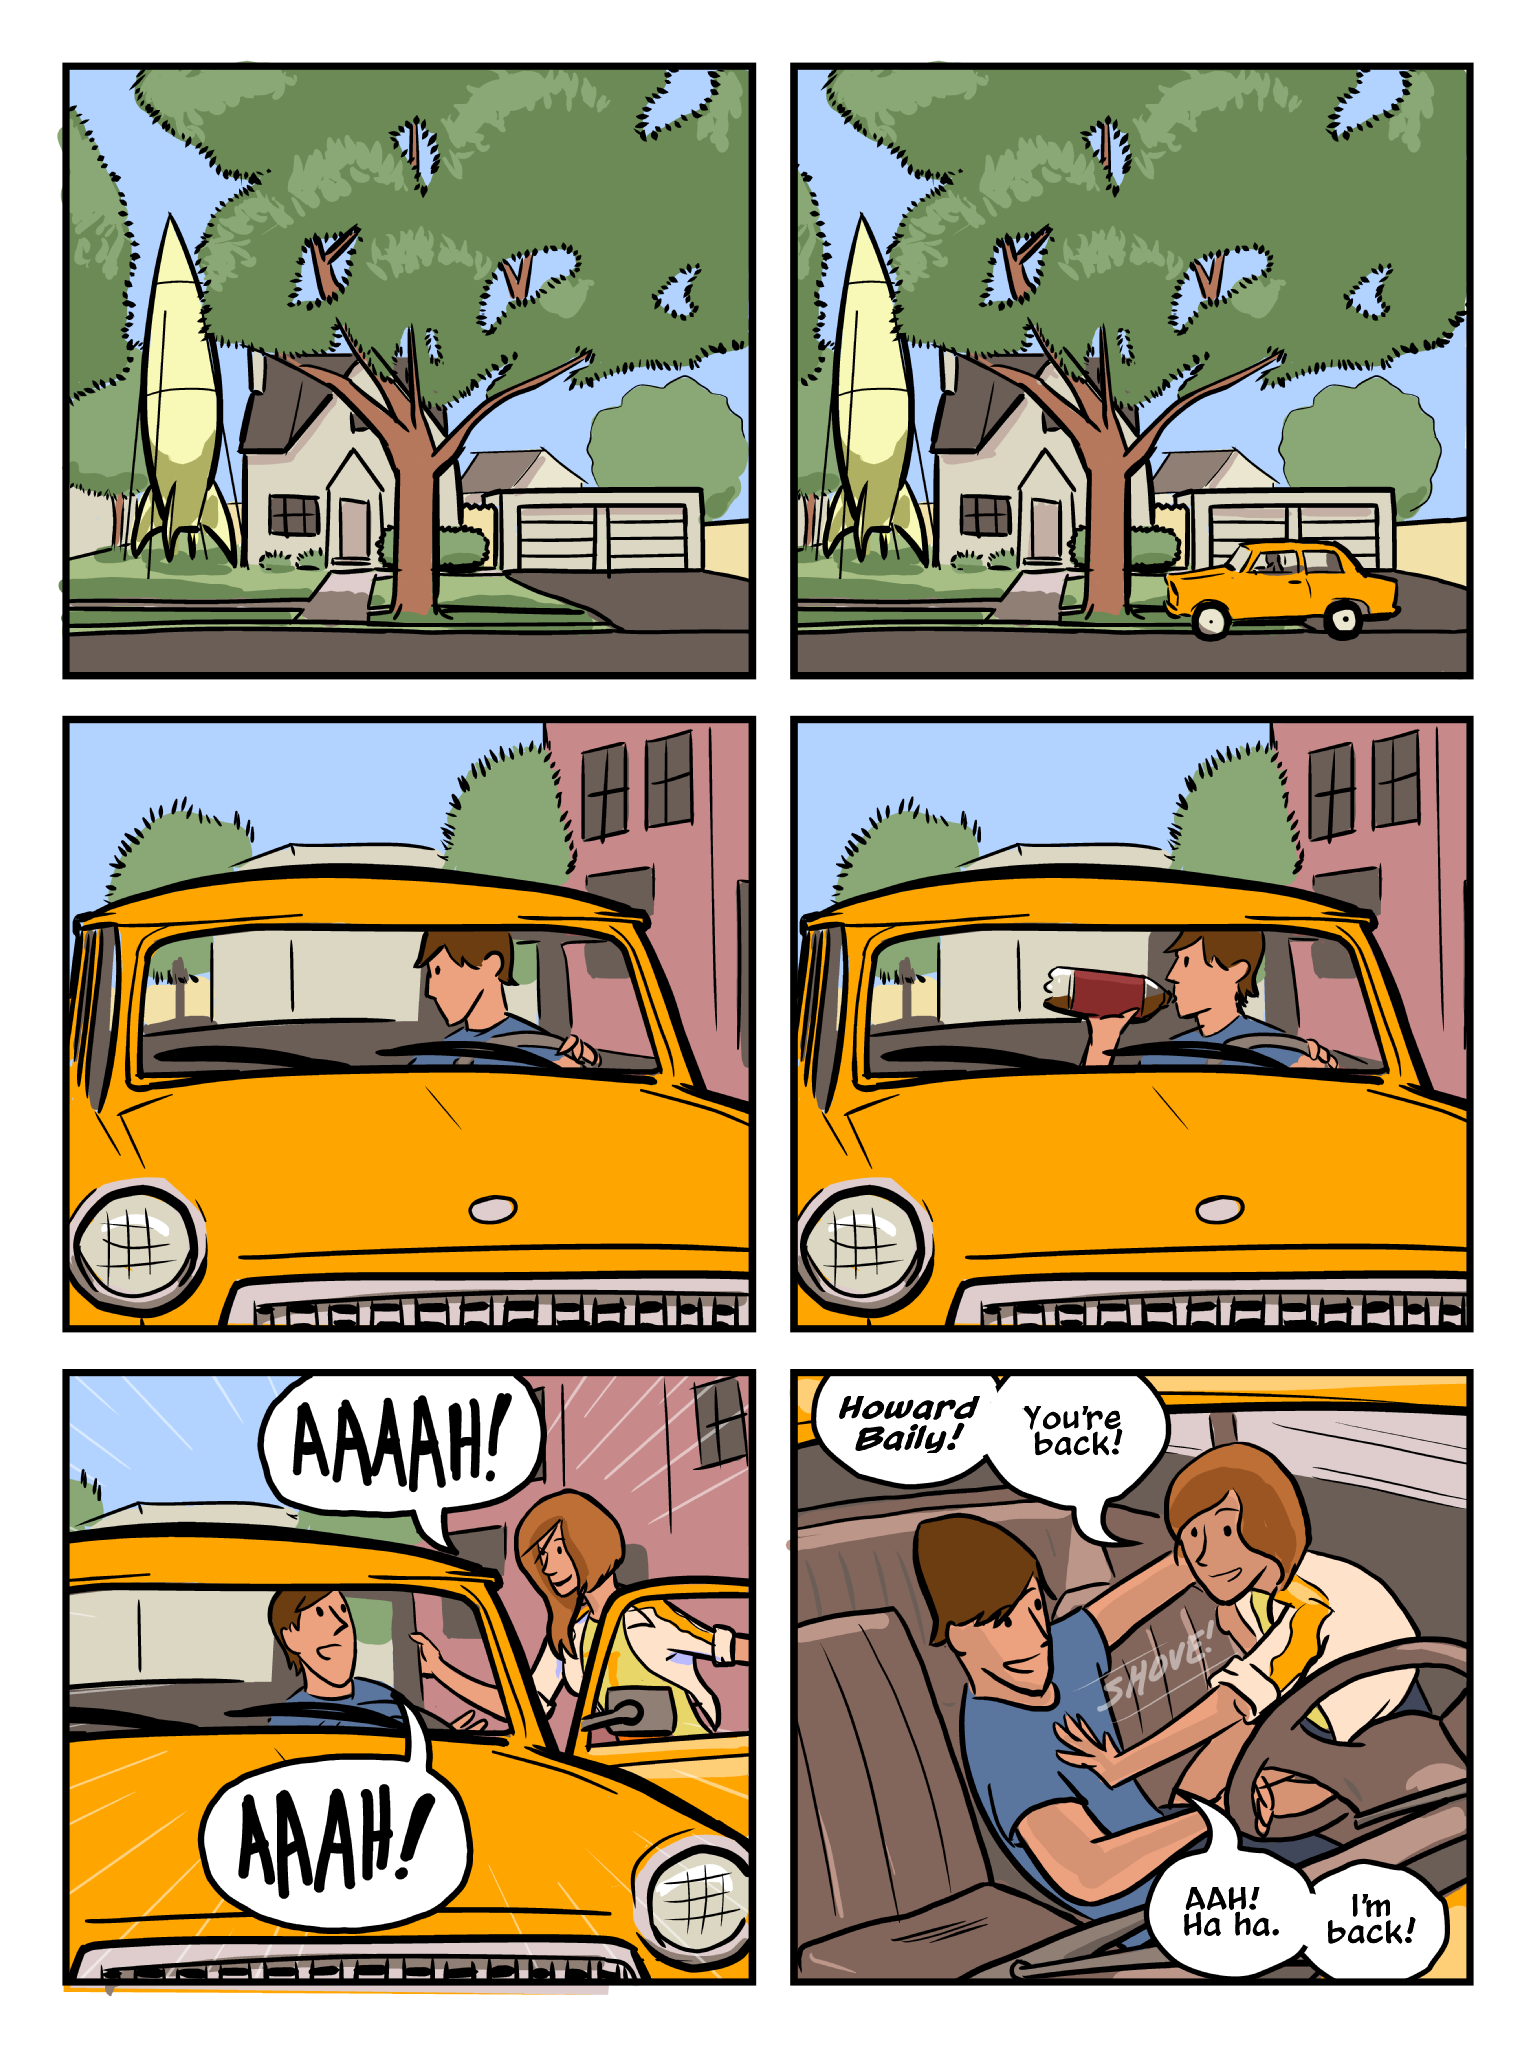 """Oh, It's the End of the World"" page 4. Howard pulls his car up to a house with a large green rocket ship docked in the side yard. After taking a swig from a 2 L bottle of soda, Erin appears next to his car, throws open the car door, and dives in to give him a hug. ""Howard Baily! You're back!"" she shouts. ""I'm back."" he laughs."